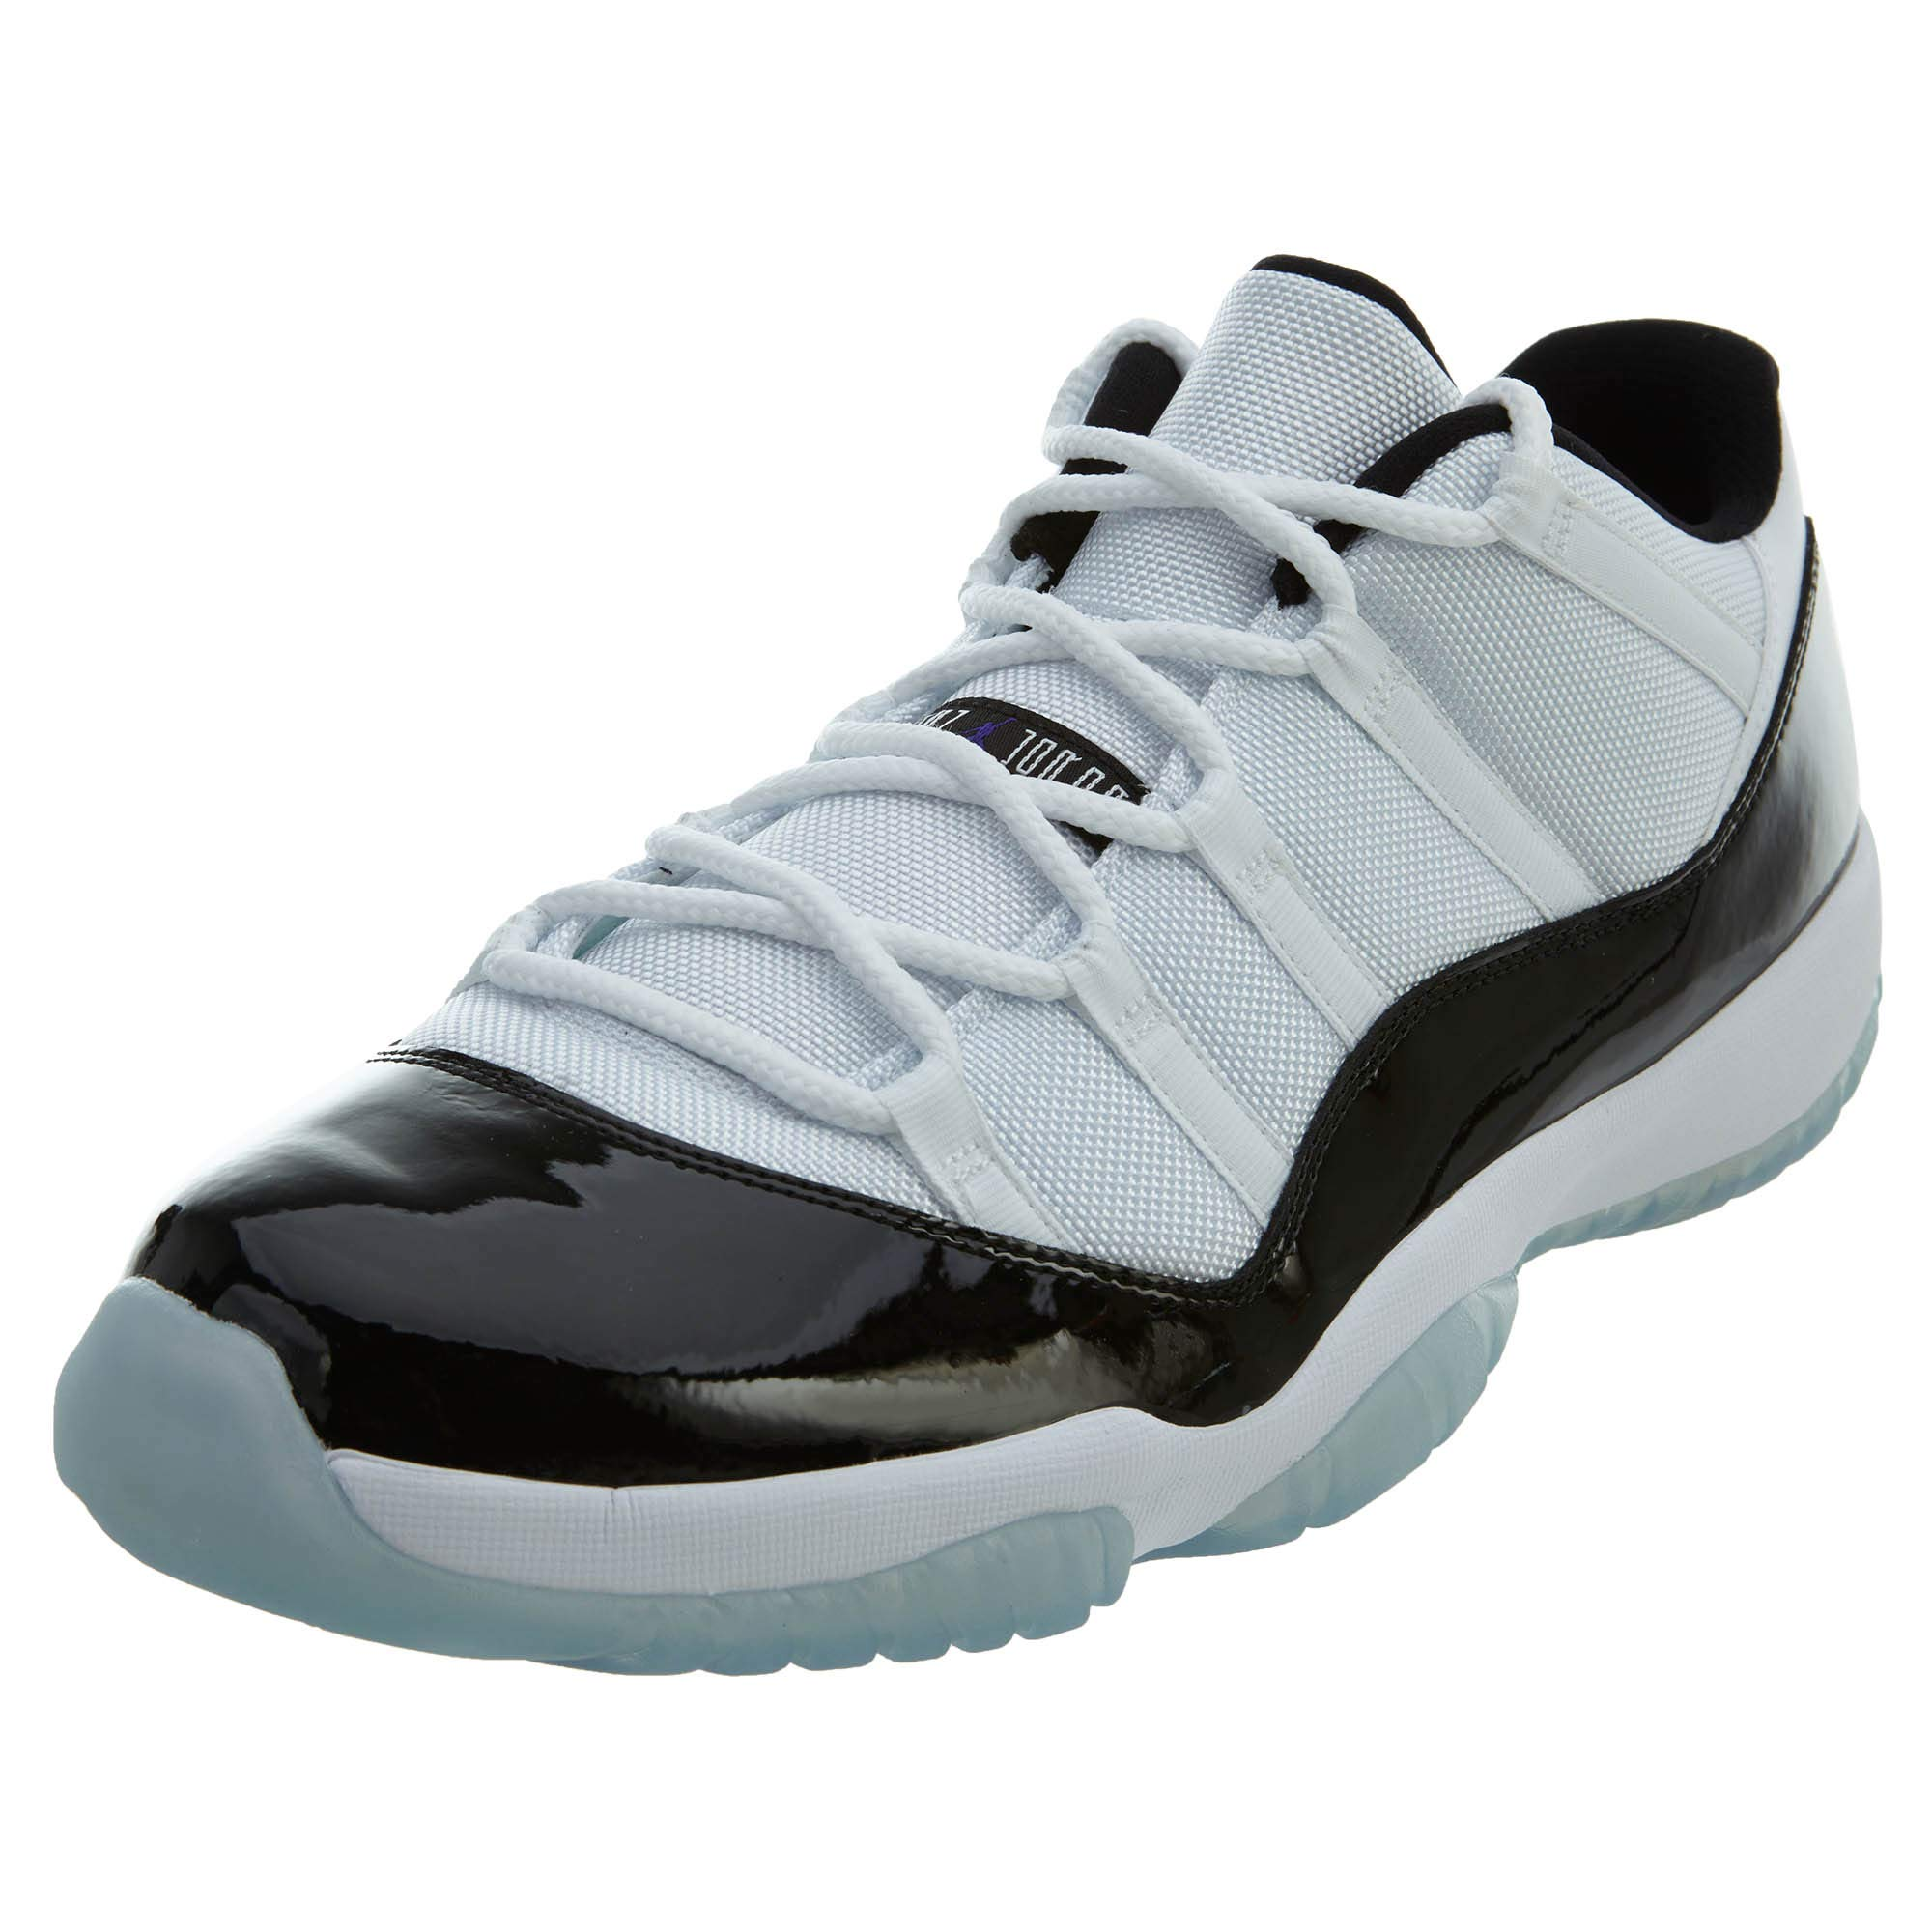 75a03e5d230ced Galleon - Air Jordan 11 Retro Low